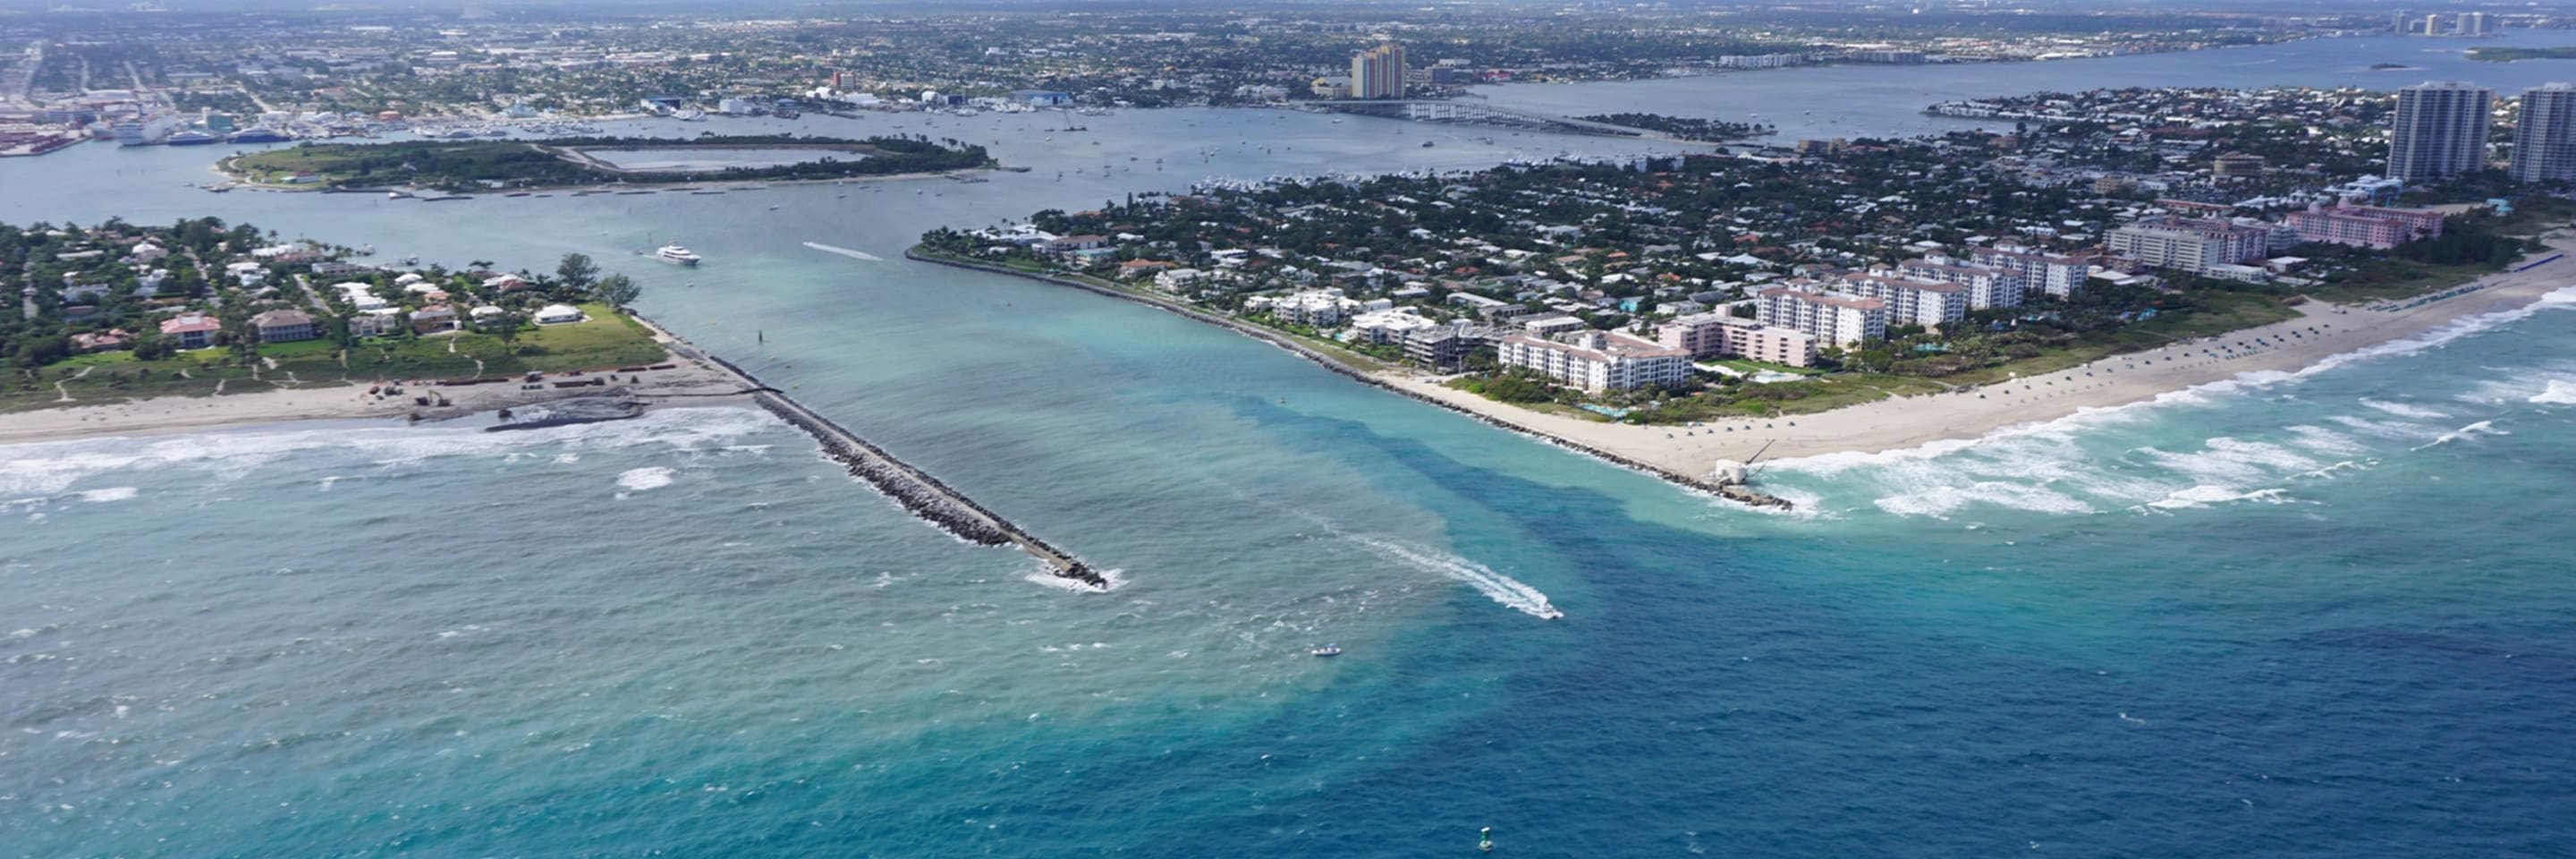 Hotels in Pompano Beach